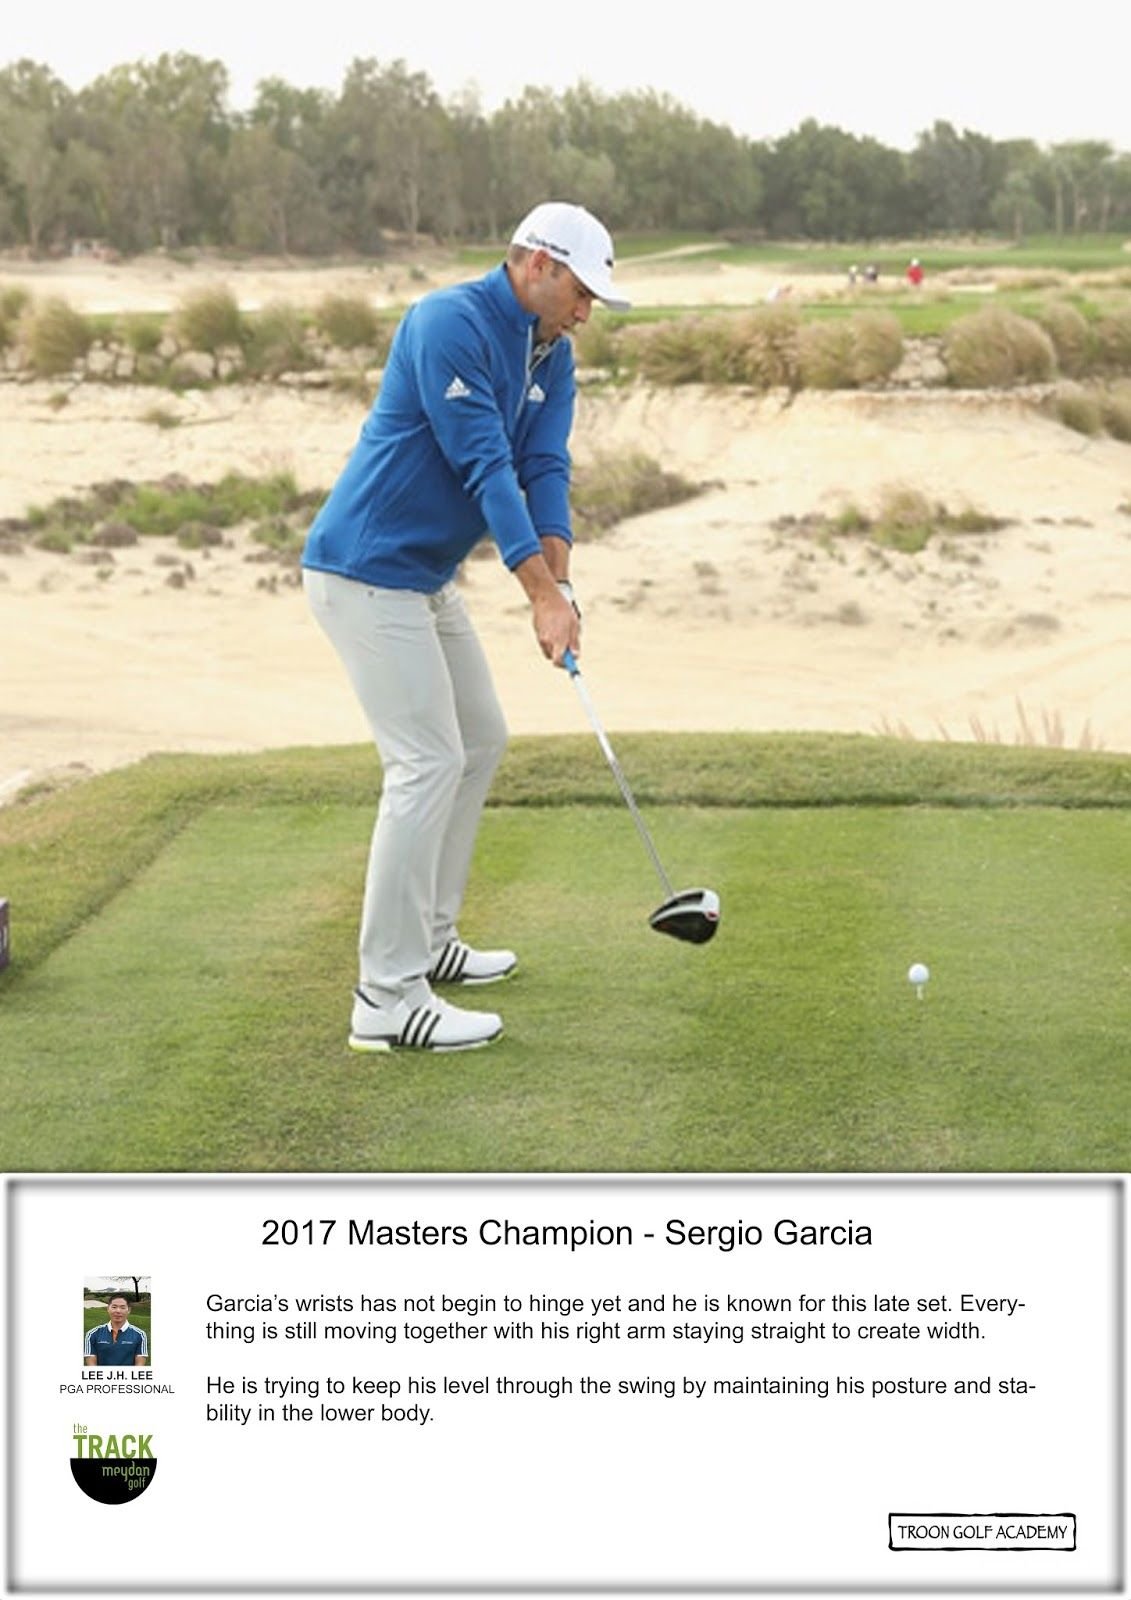 Sergio Garcia SEQUENCE 3: Garcia's wrists has not begin to